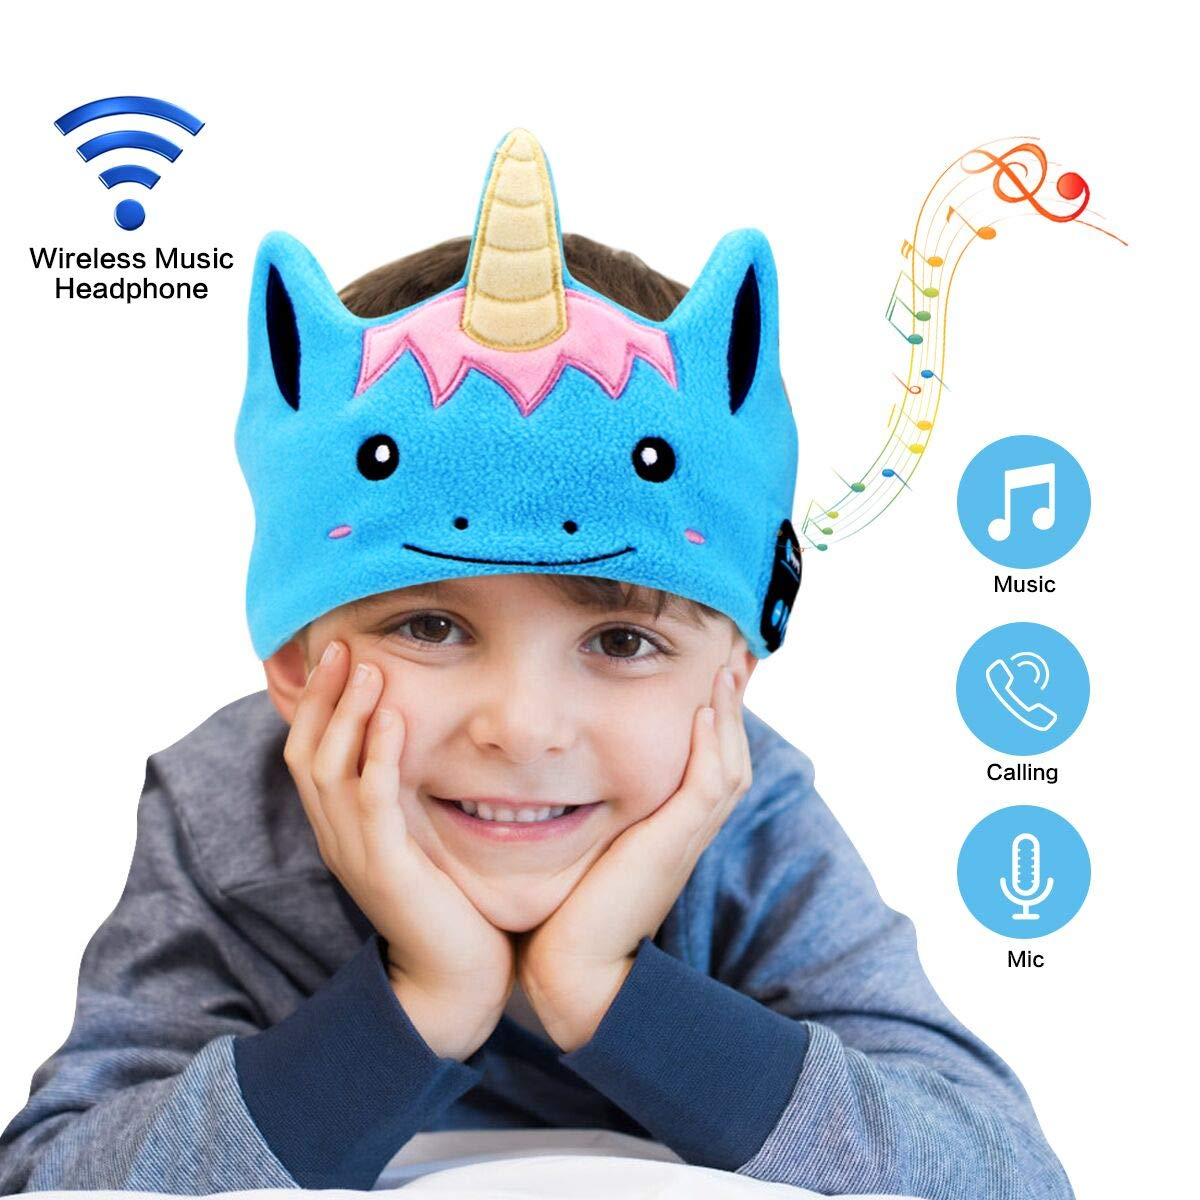 WU-MINGLU Kids Headband Headphones, Wireless Bluetooth Music Soft Fleece Headband Children\'s Headband Earphones Sleep Headphones Built-in Mic Adjustable Washable For Home, Travel